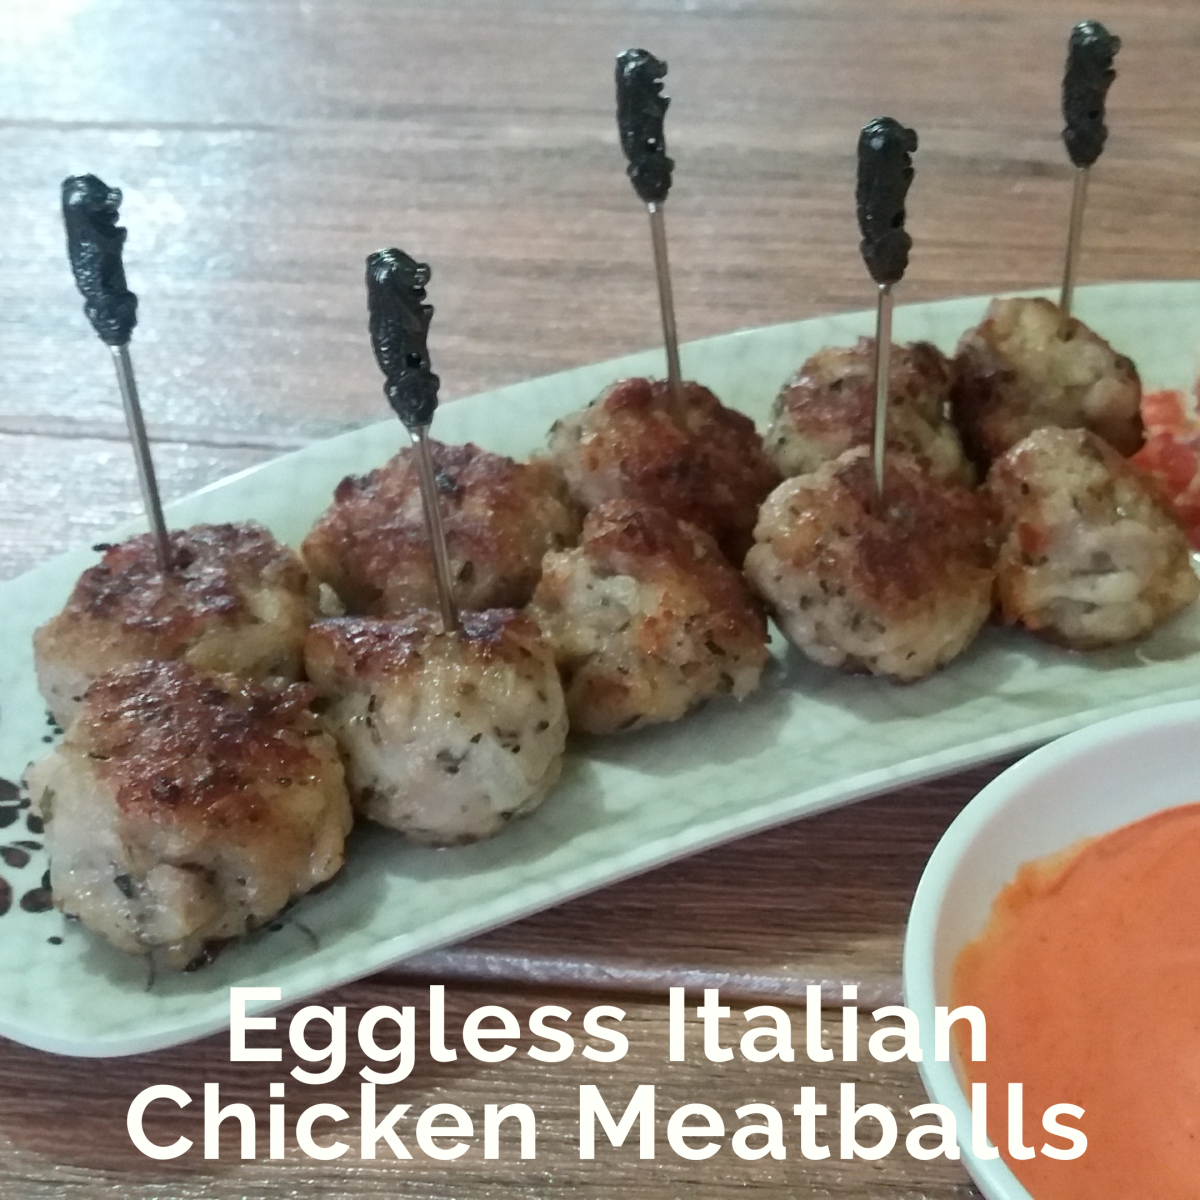 How to Cook Eggless Italian Chicken Meatballs